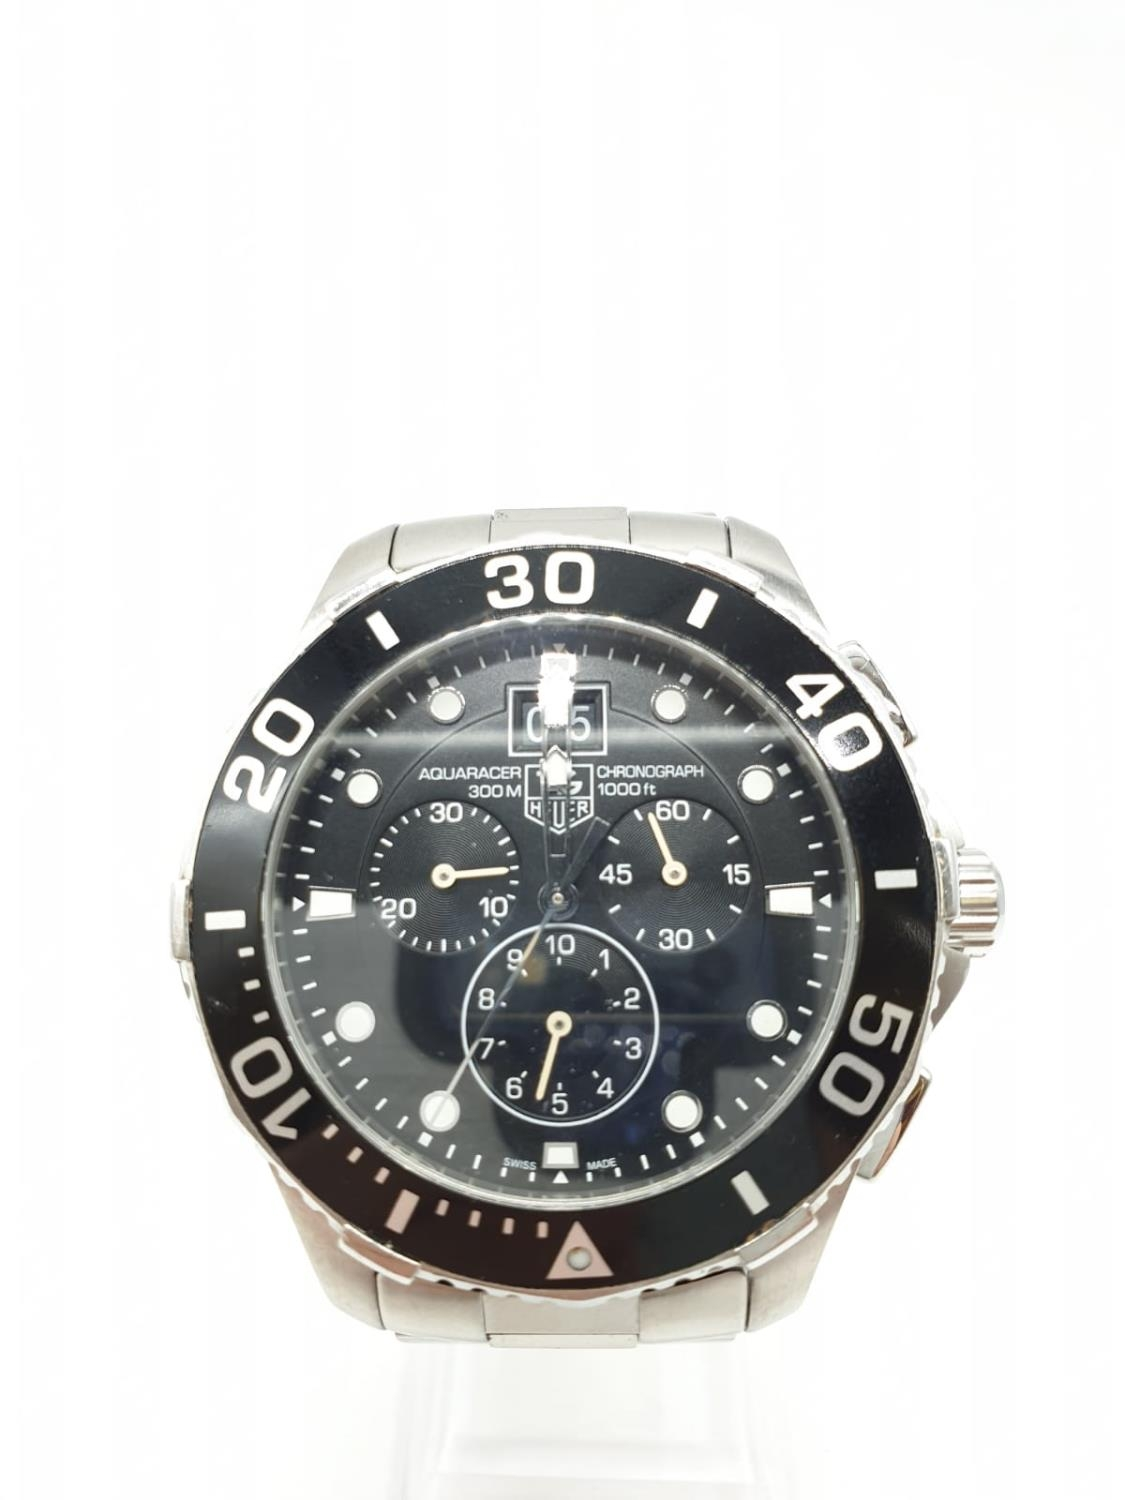 Tag Heuer gents chronograph Aquaracer watch, black face twisted bezel and steel strap, 44mm case - Image 5 of 14